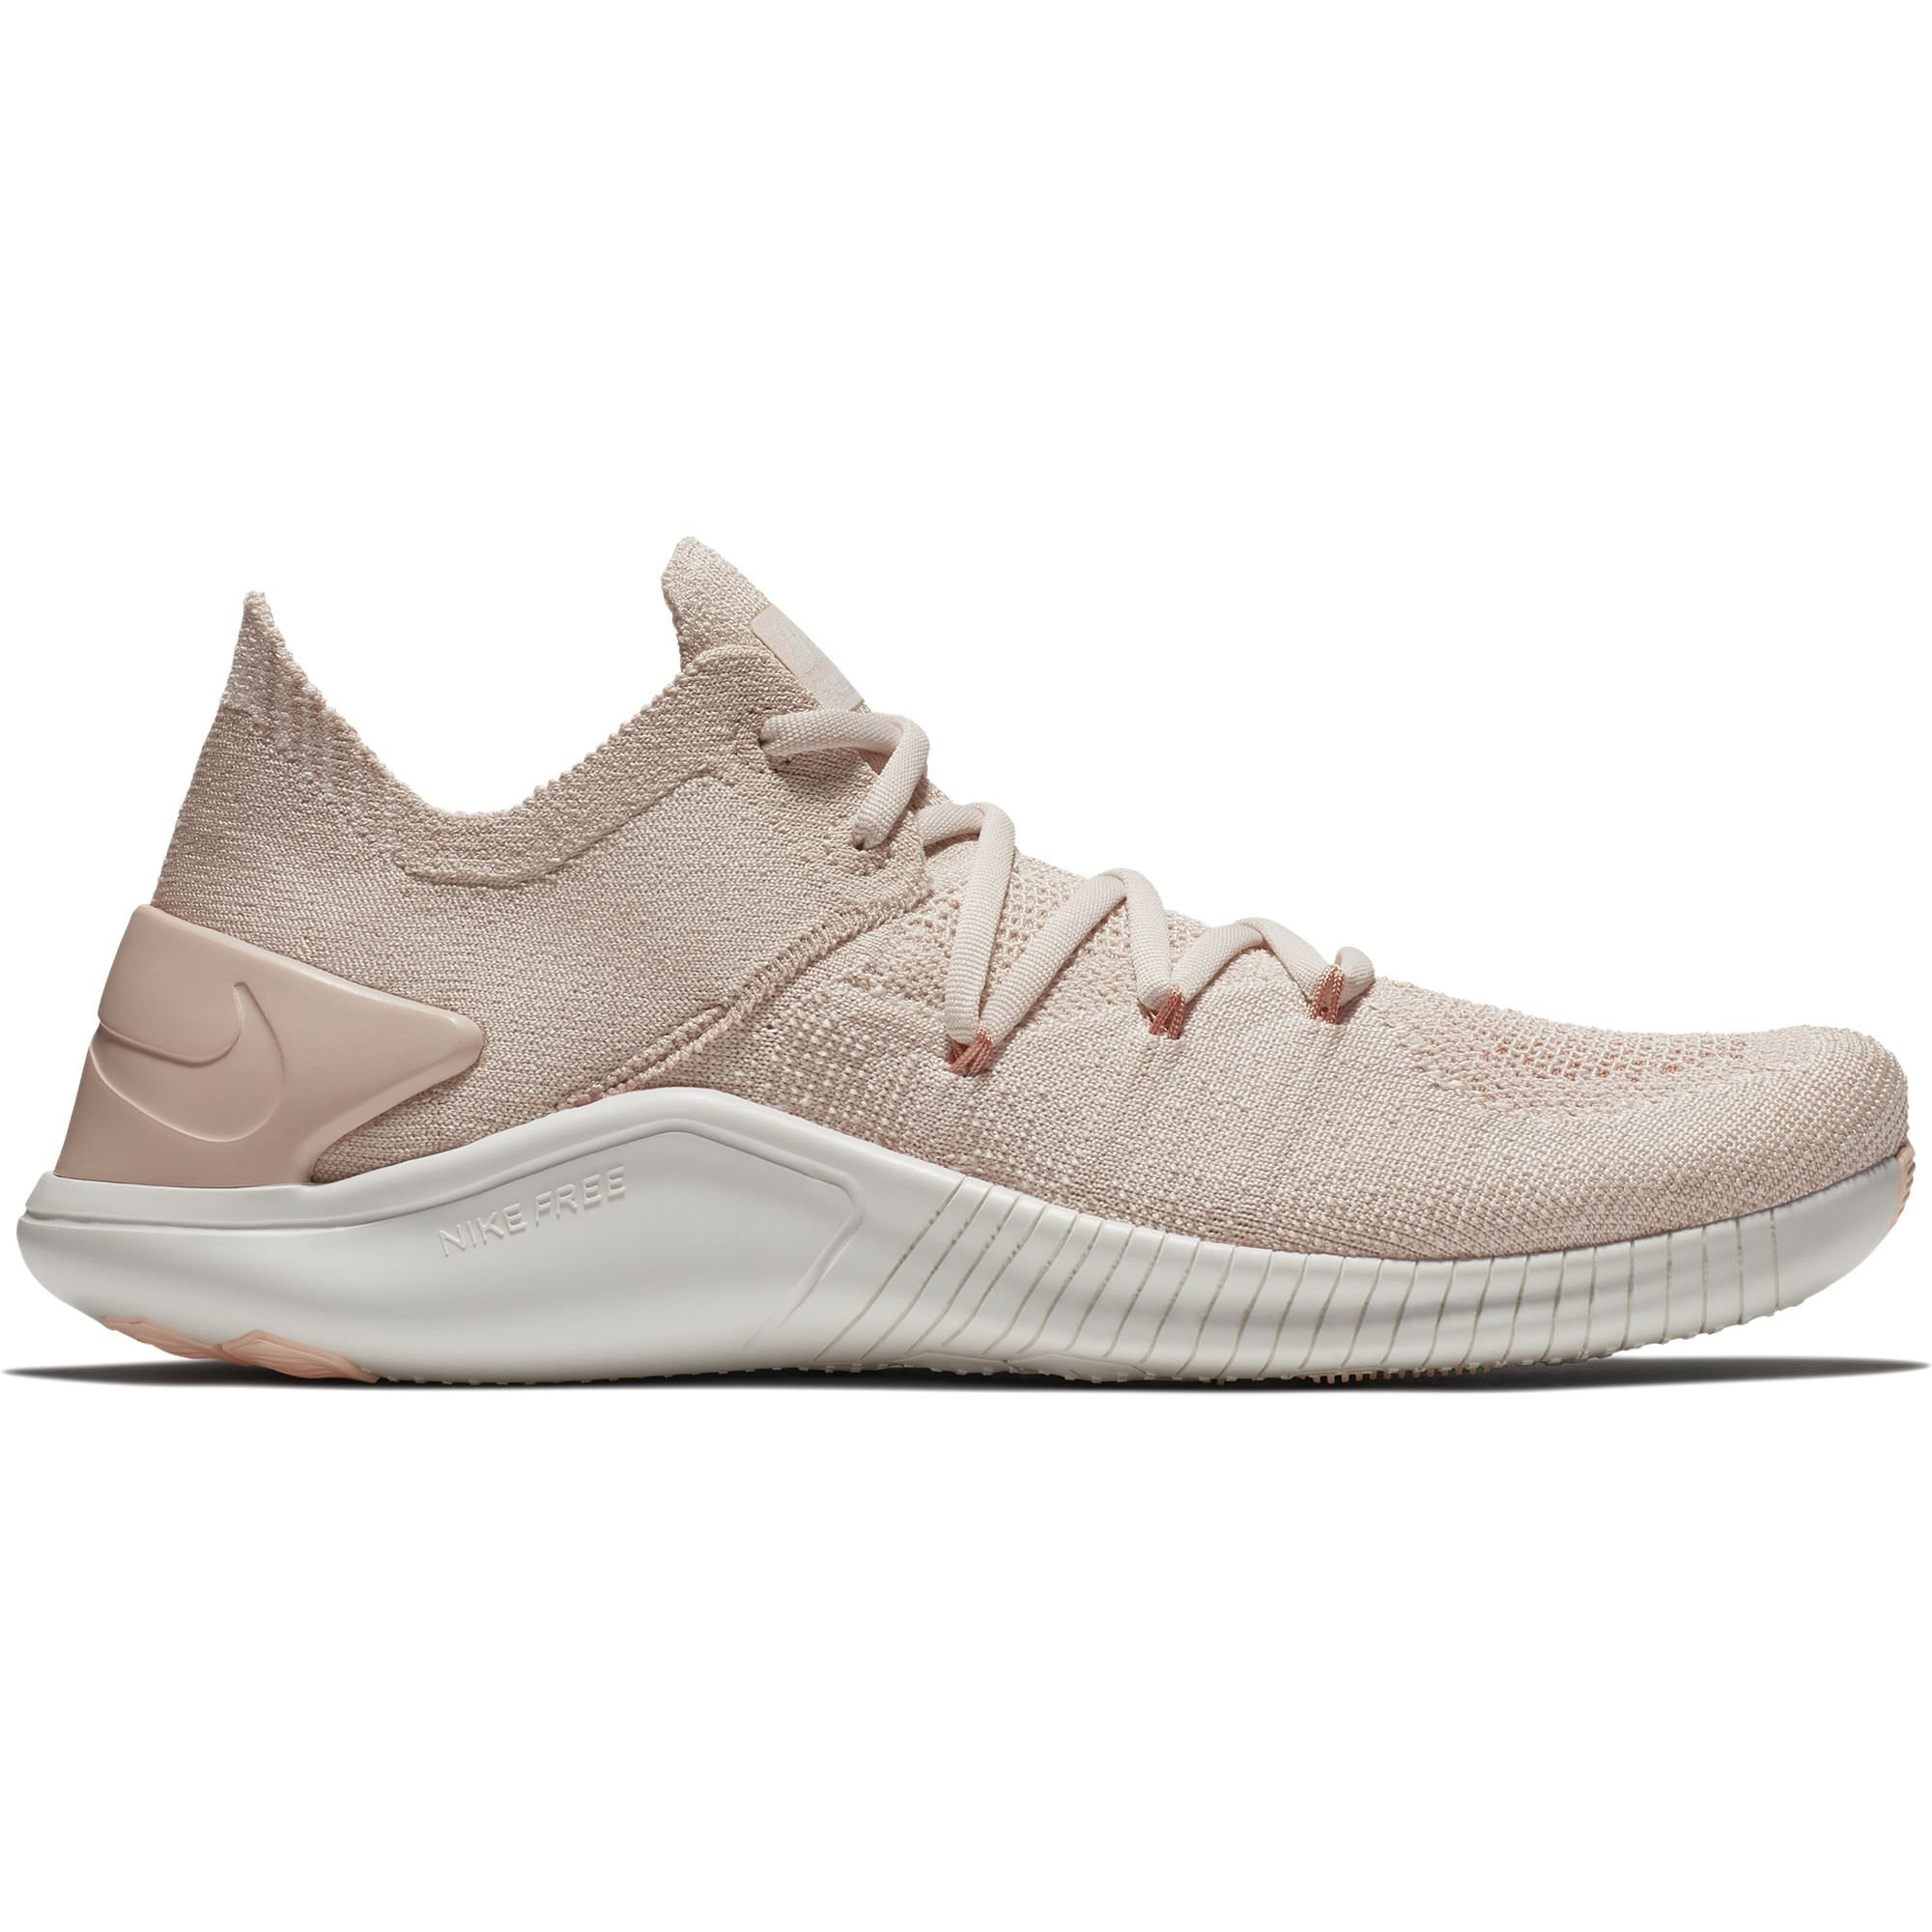 ce295514db4a3 Galleon - NIKE Women s Free TR Flyknit 3 Particle Beige Particle  Beige-Phantom 11.0